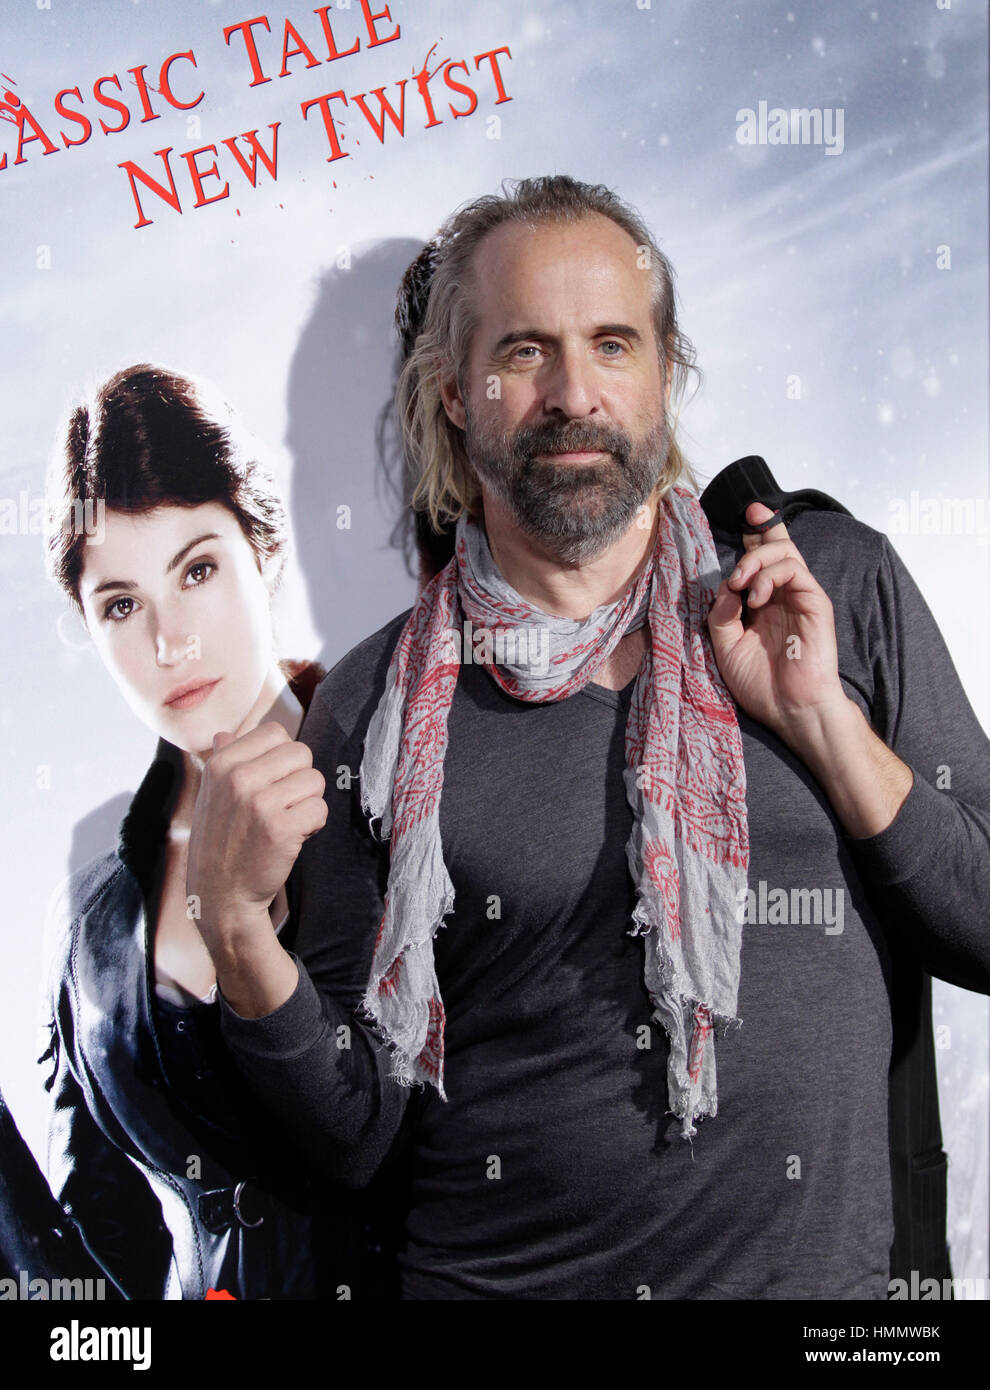 Peter Stormare Arrives At The Premiere Of The Film Hansel Gretel Stock Photo Alamy